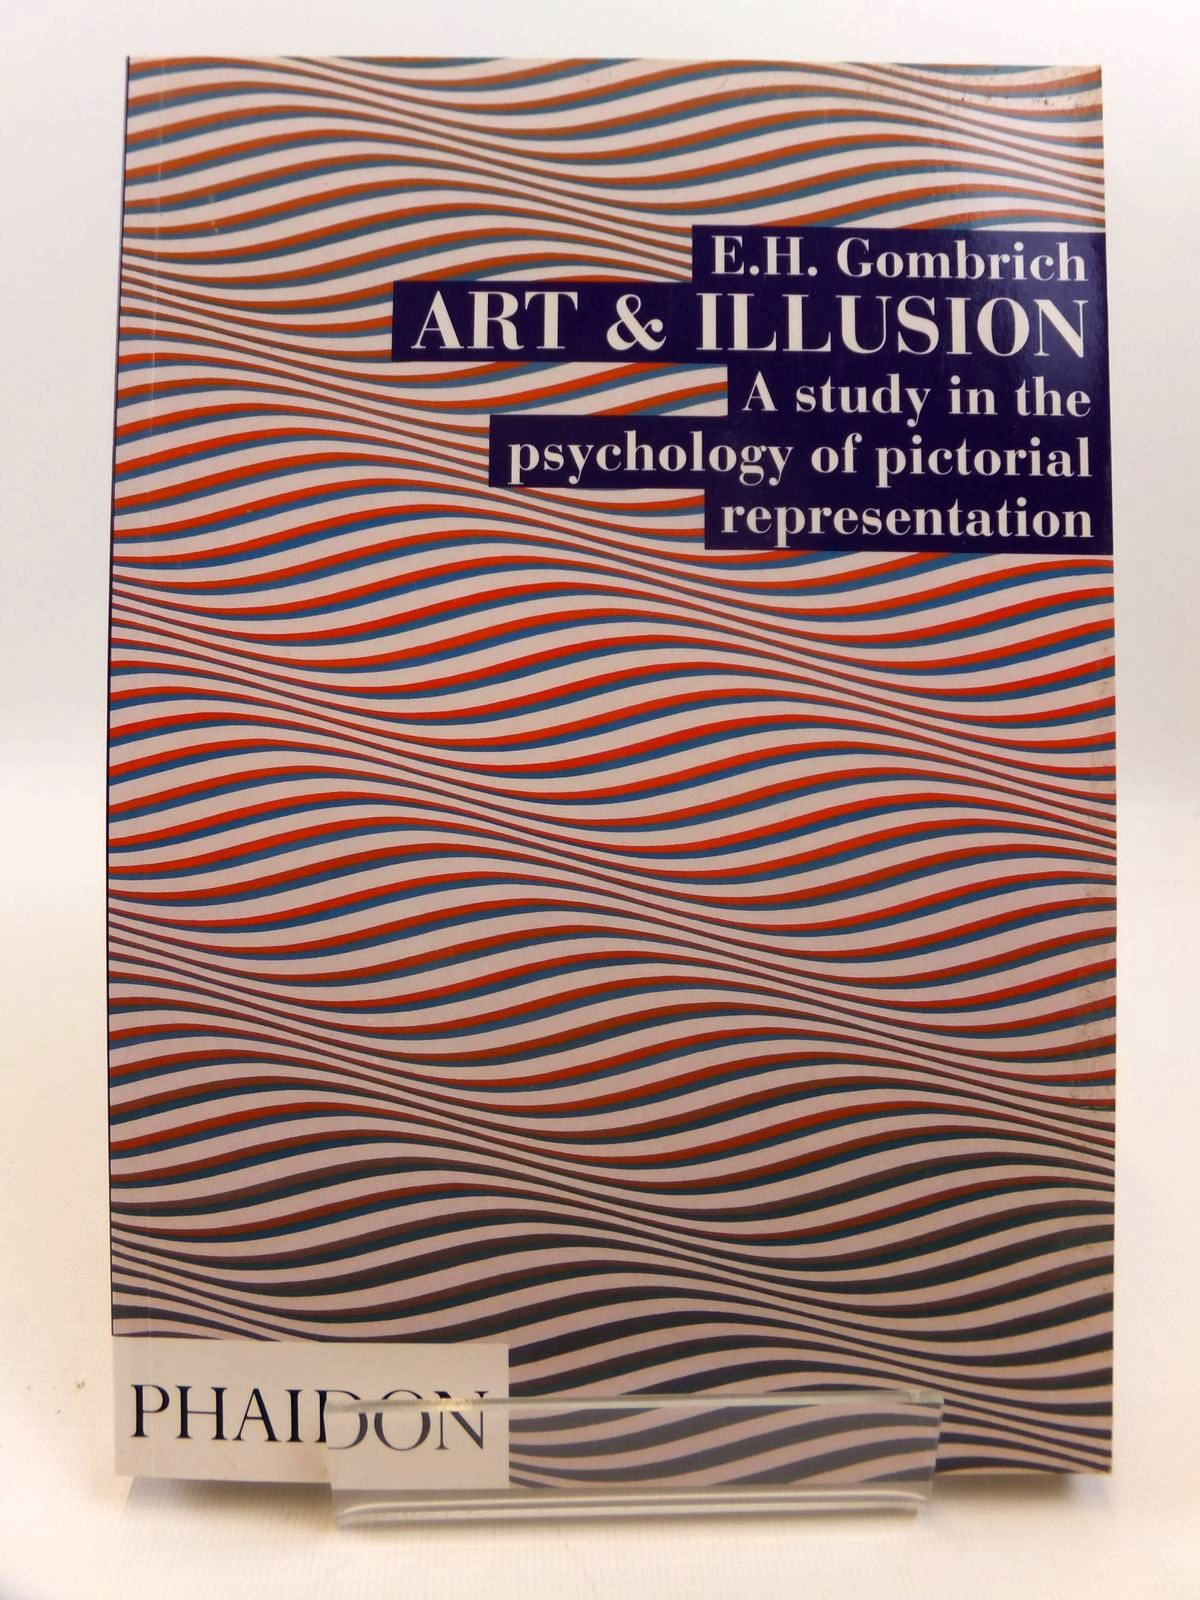 Photo of ART AND ILLUSION  A STUDY IN THE PSYCHOLOGY OF PICTORIAL REPRESENTATION written by Gombrich, E.H. published by Phaidon (STOCK CODE: 1812448)  for sale by Stella & Rose's Books